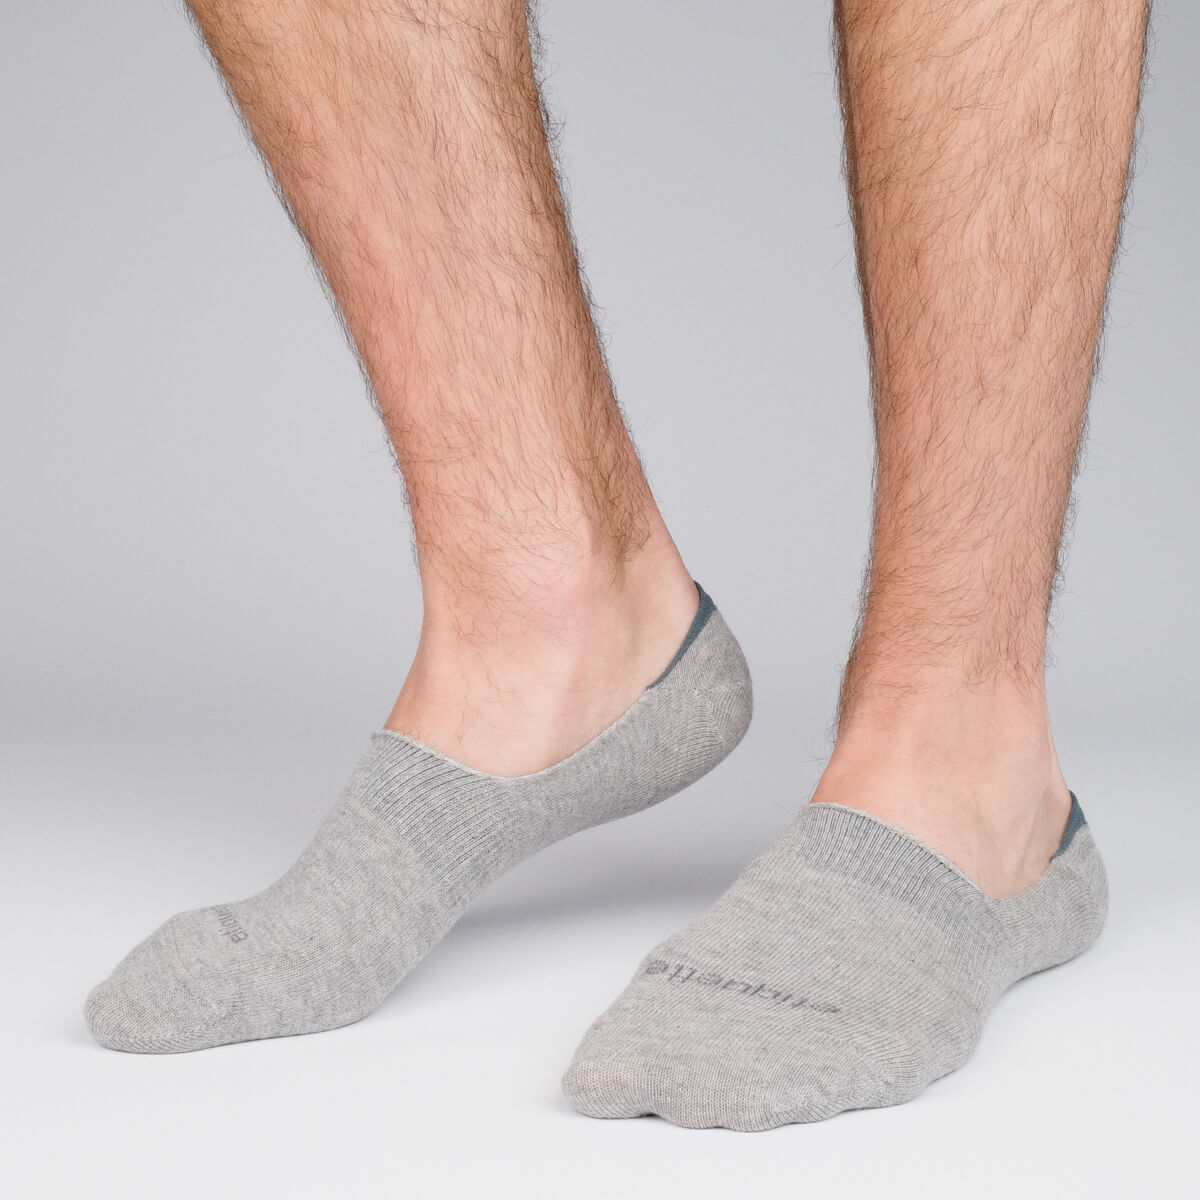 Mens Socks - Men's No Show Socks 3 Pack - Grey⎪Etiquette Clothiers